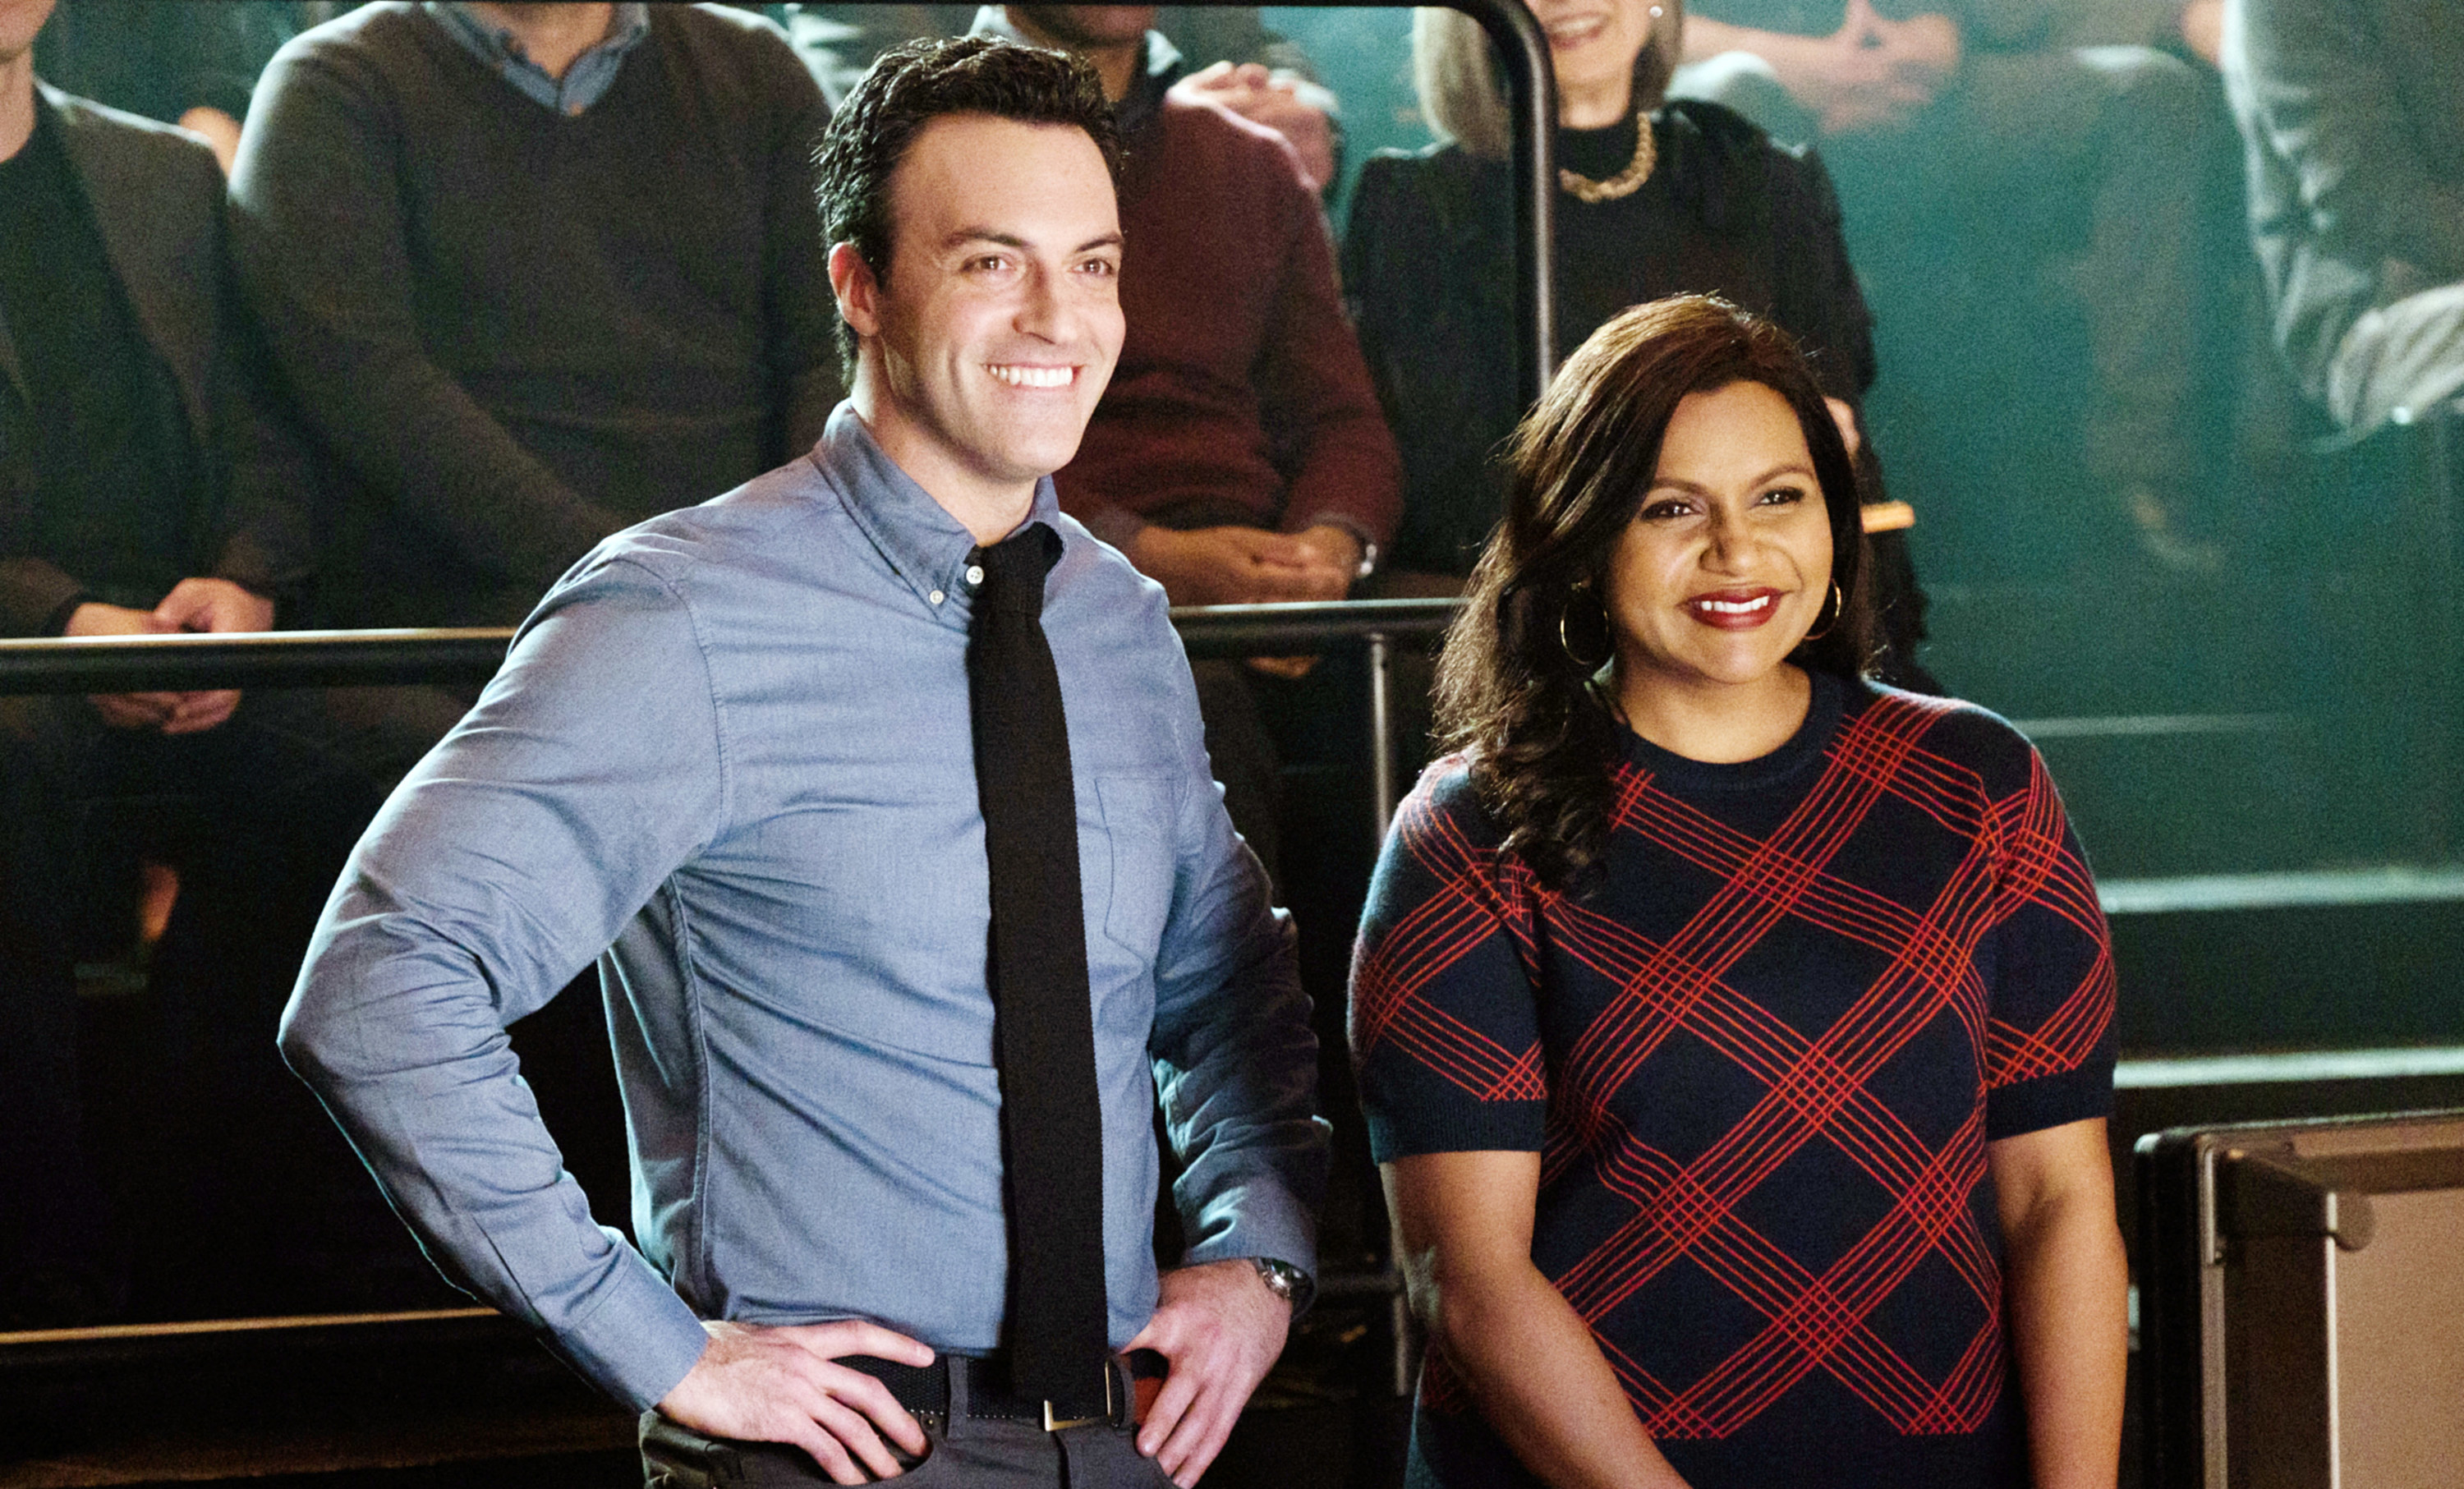 still image of reid scott and mindy kaling in the movie late night, both are looking ahead smiling